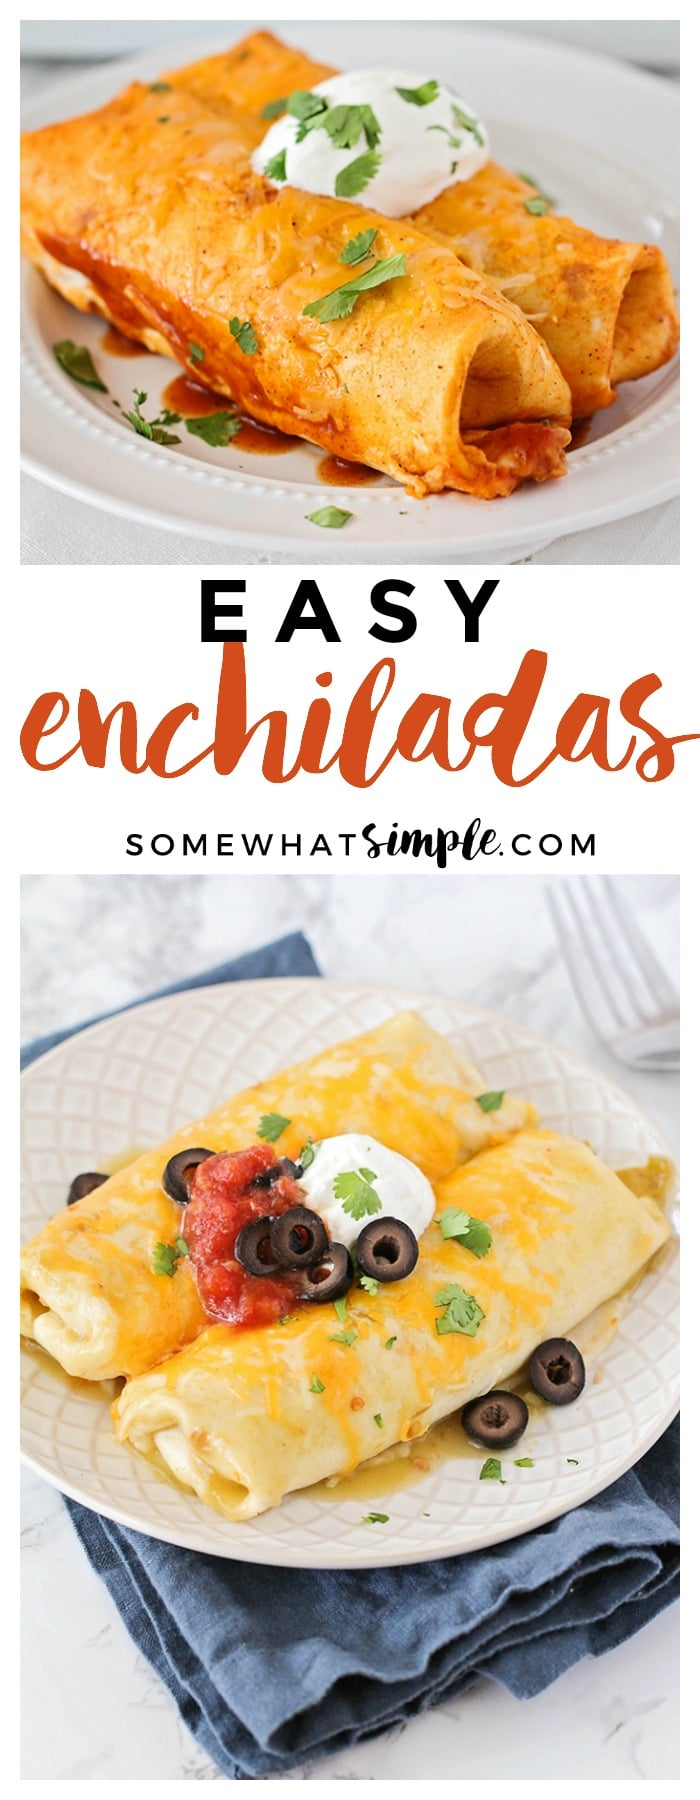 Making enchiladas doesn't have to be something that takes all day and requires a ton of ingredients!!! Here is our easy enchiladas recipe with the BEST homemade AND store-bought enchilada sauces. (And trust me, we've tried them ALL!) #enchiladas #dinner #recipe #enchiladas